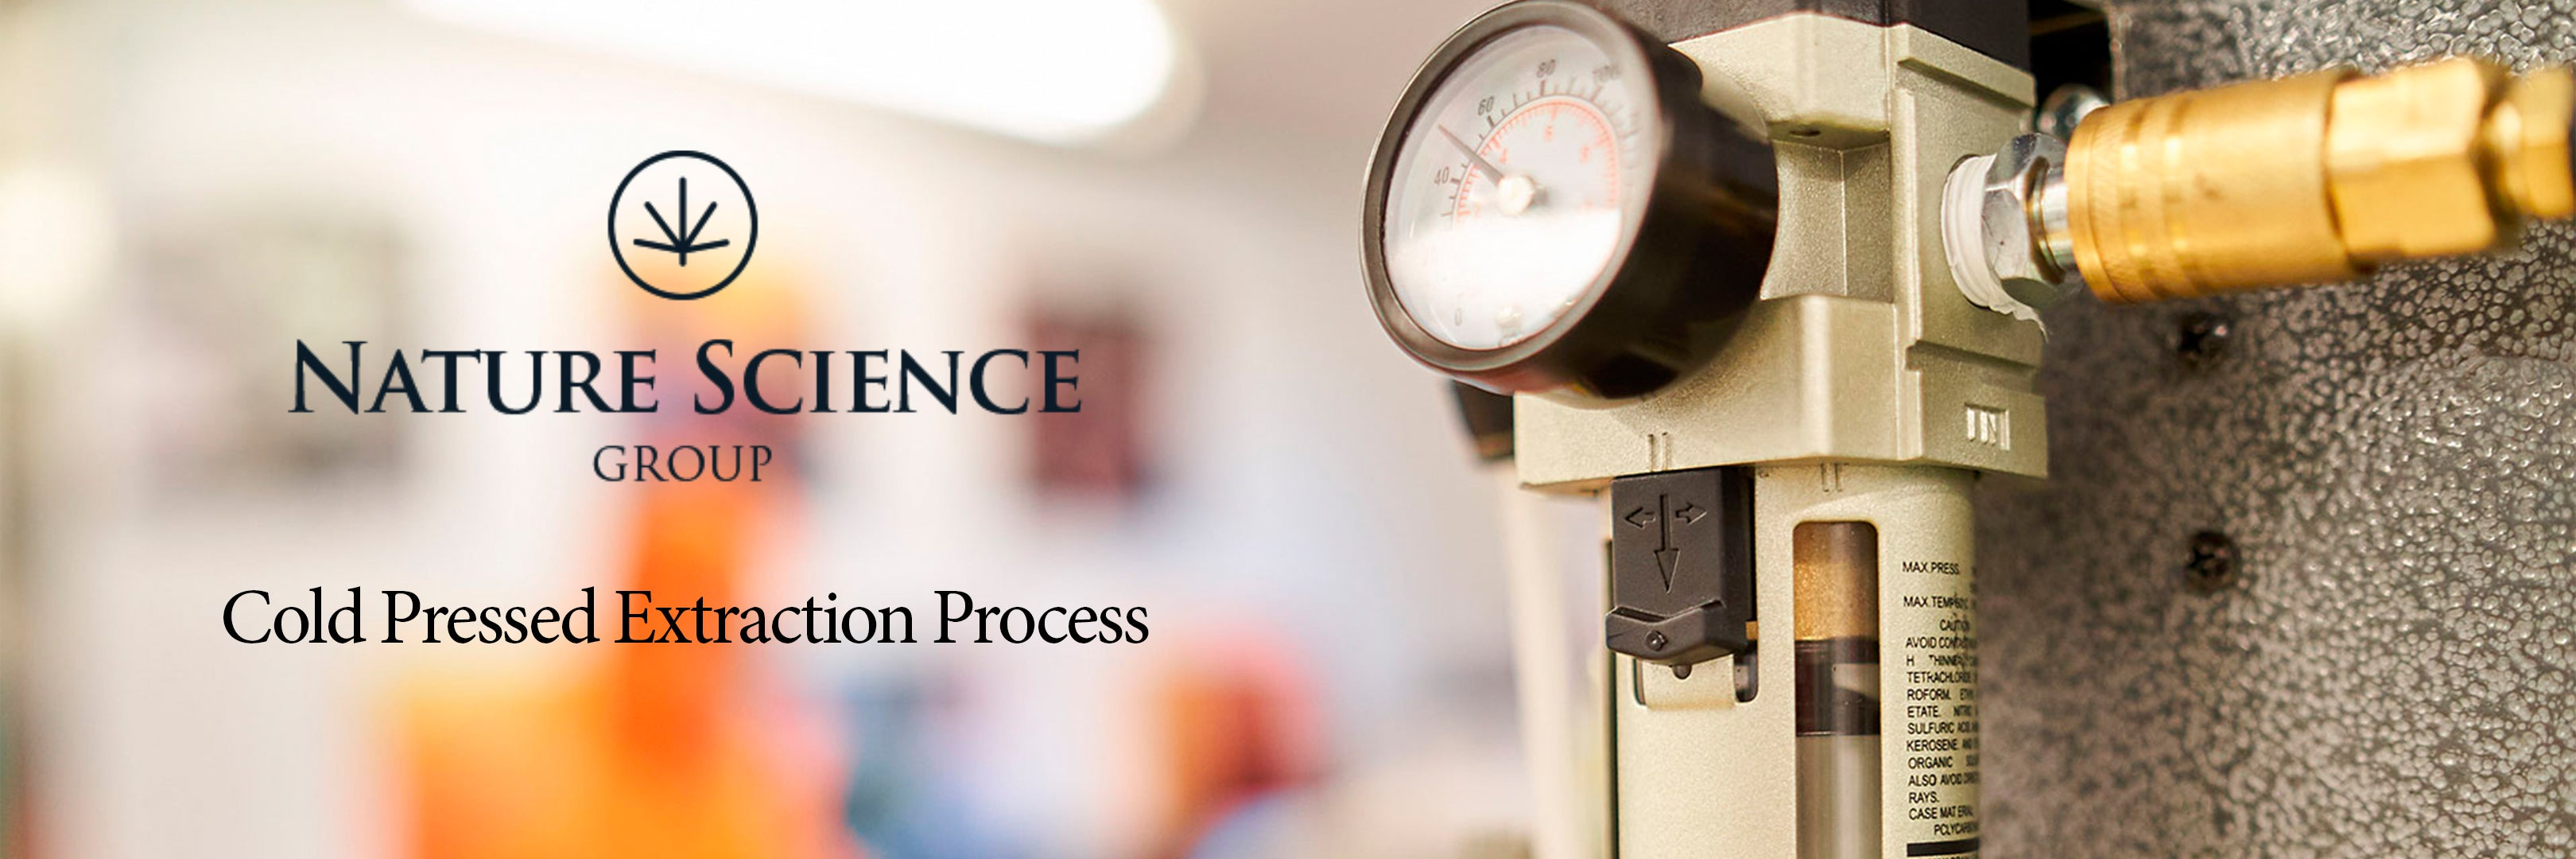 Nature Science Group - Cold Press Extraction Process